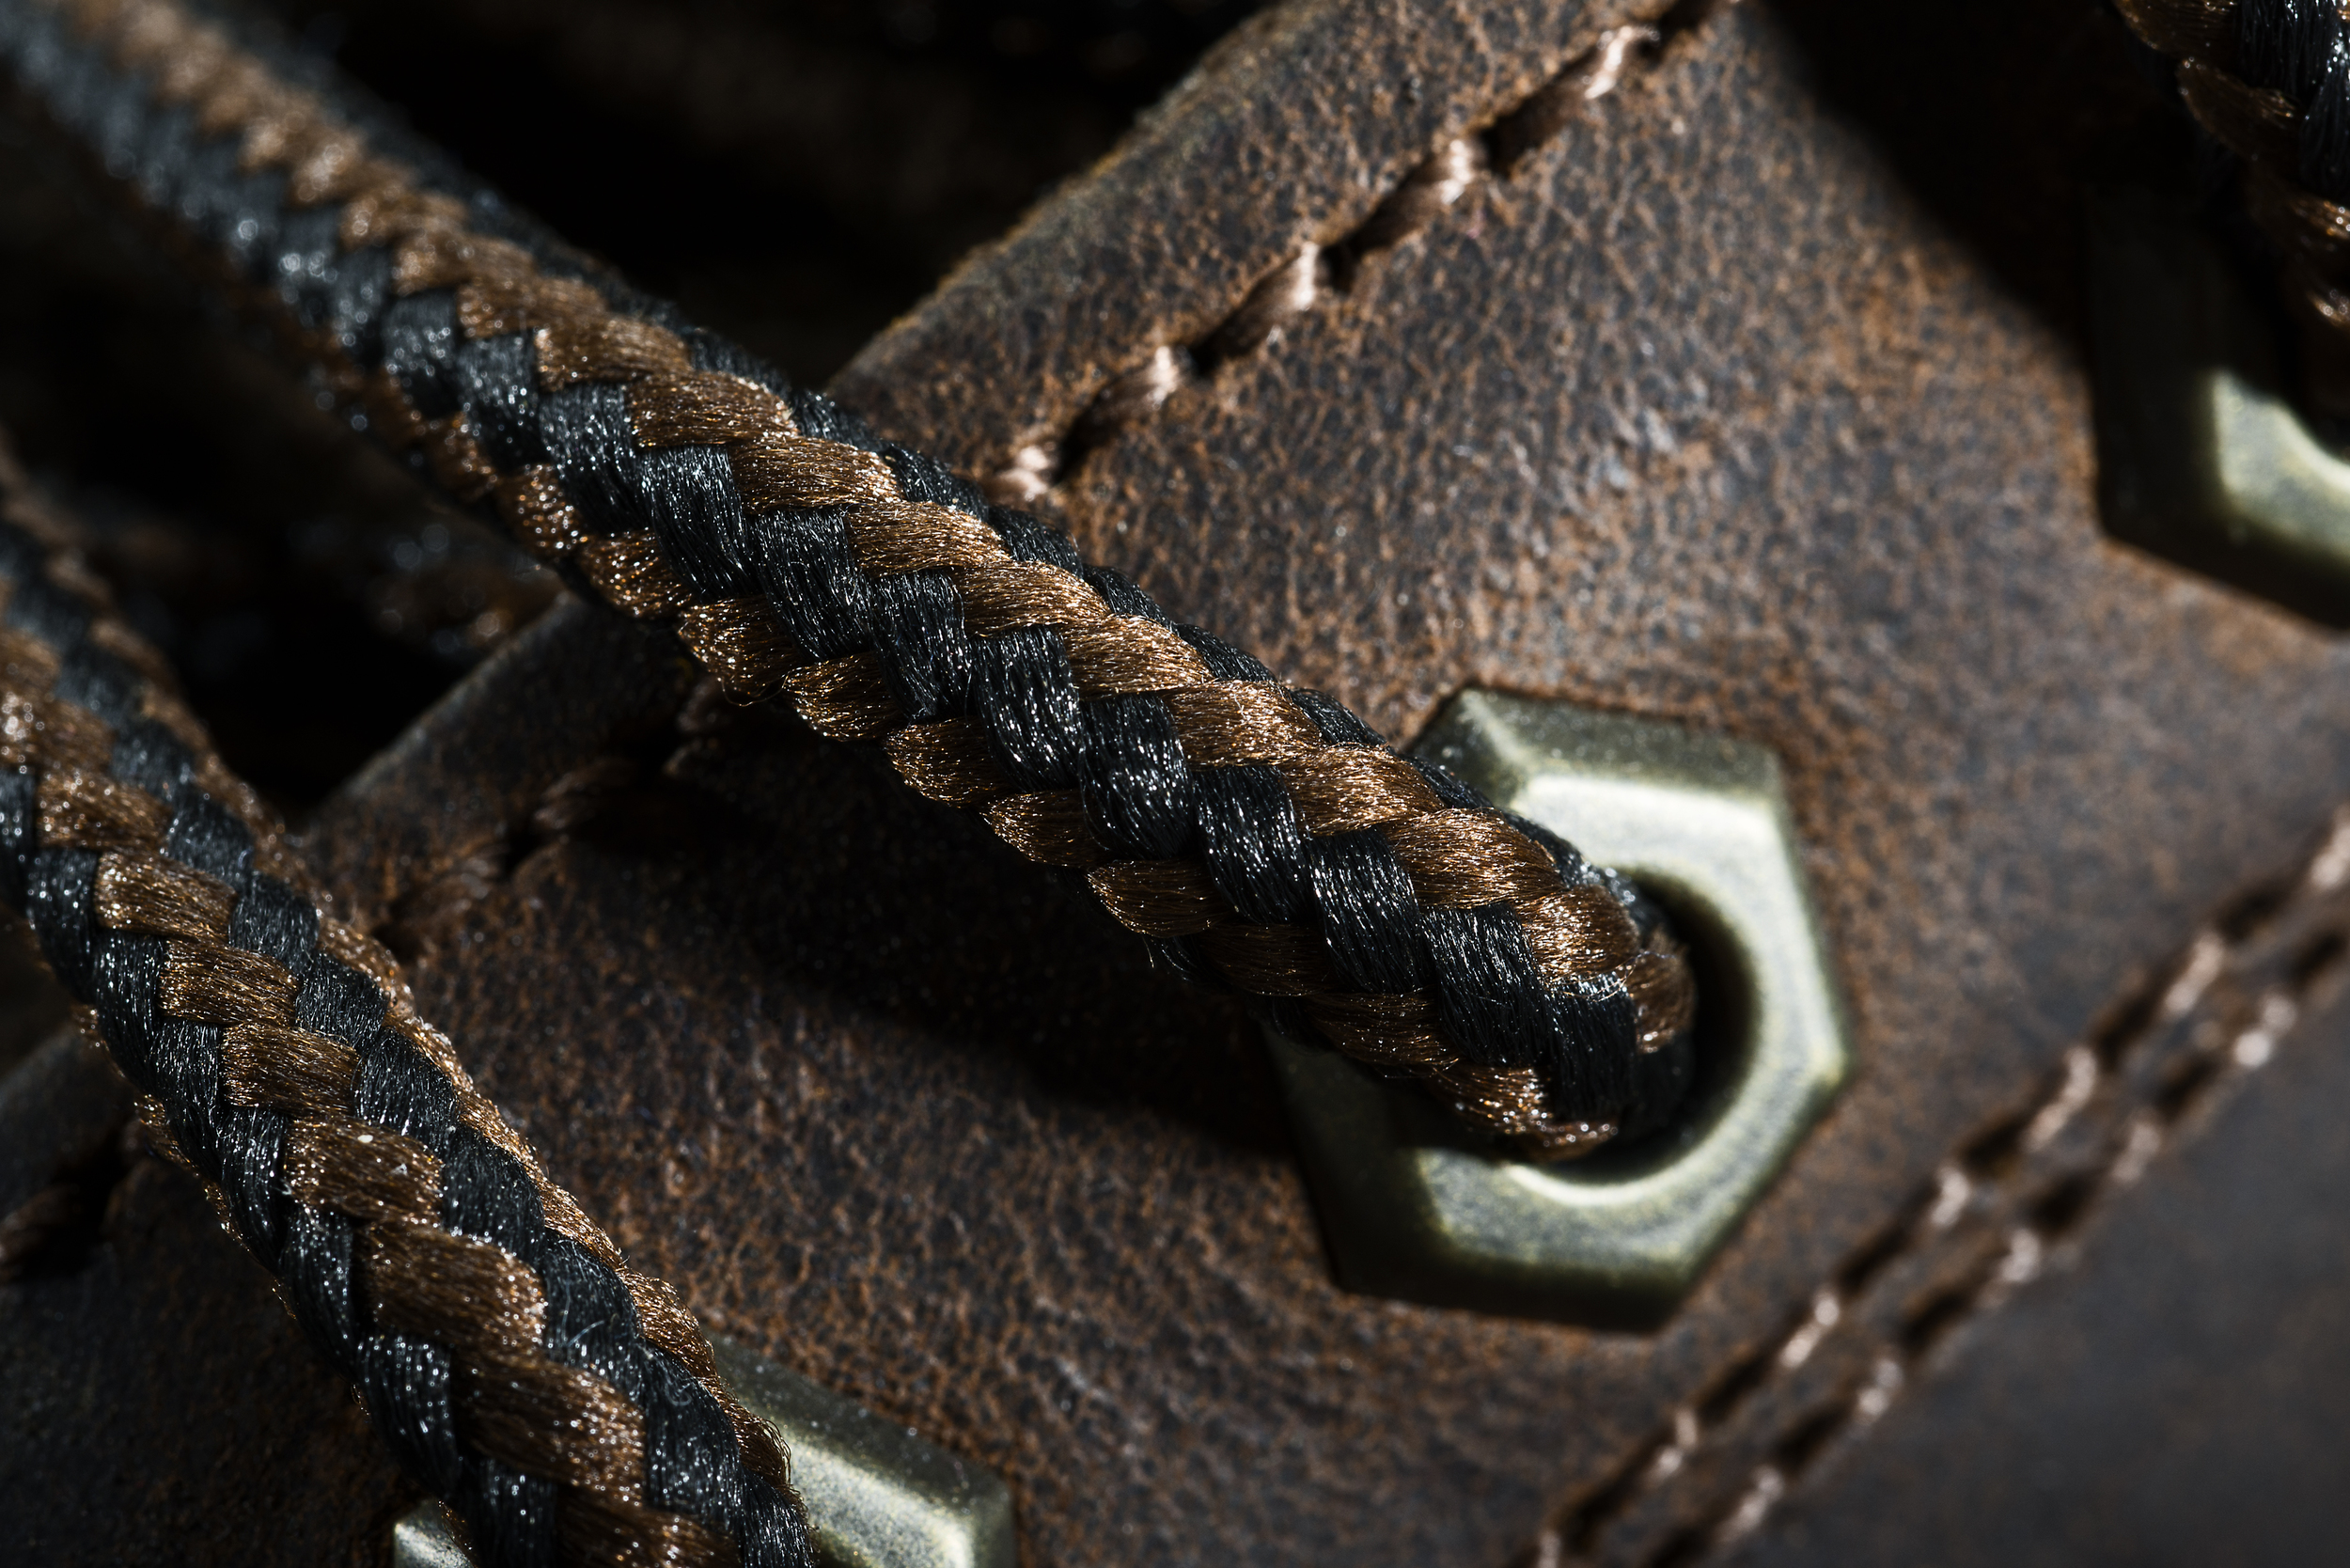 Boots_Camera_Low_Detail1.jpg